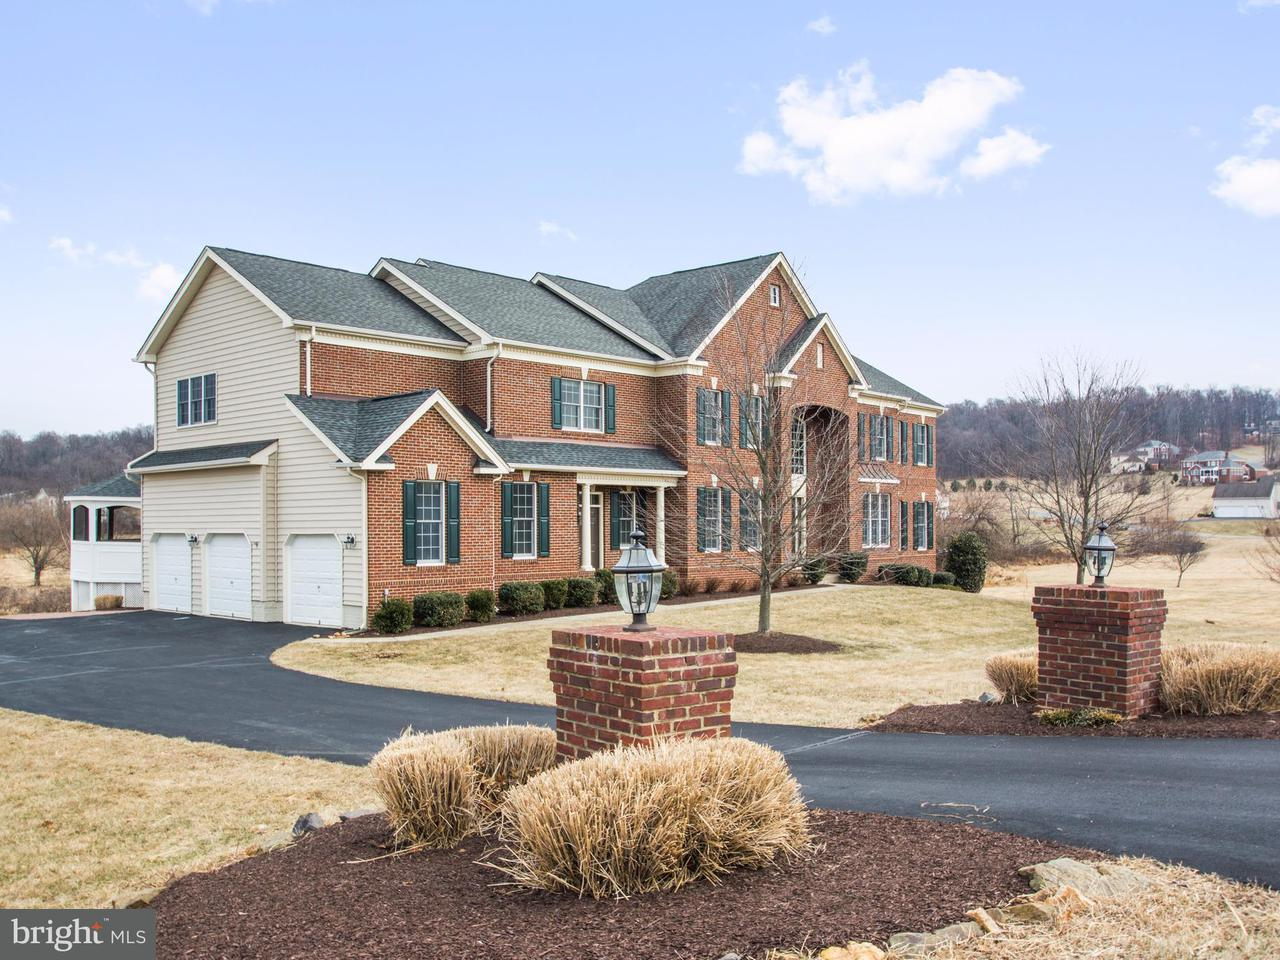 Single Family Home for Sale at 41042 Tesla Court 41042 Tesla Court Waterford, Virginia 20197 United States